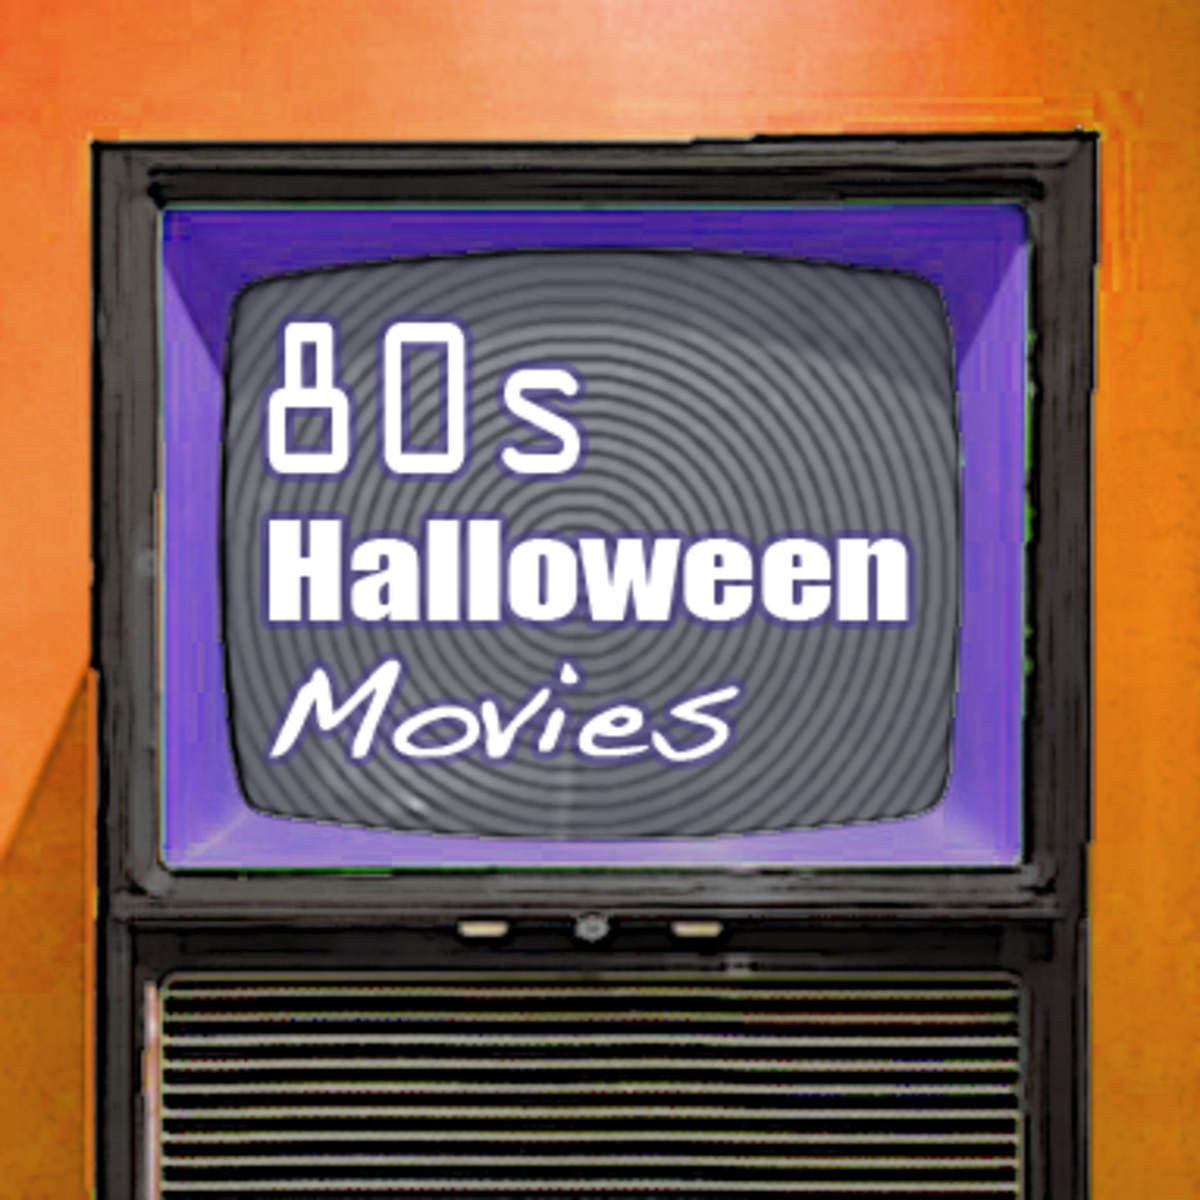 80s family halloween movies aka kid friendly horror hubpages - Halloween Movies For Young Kids